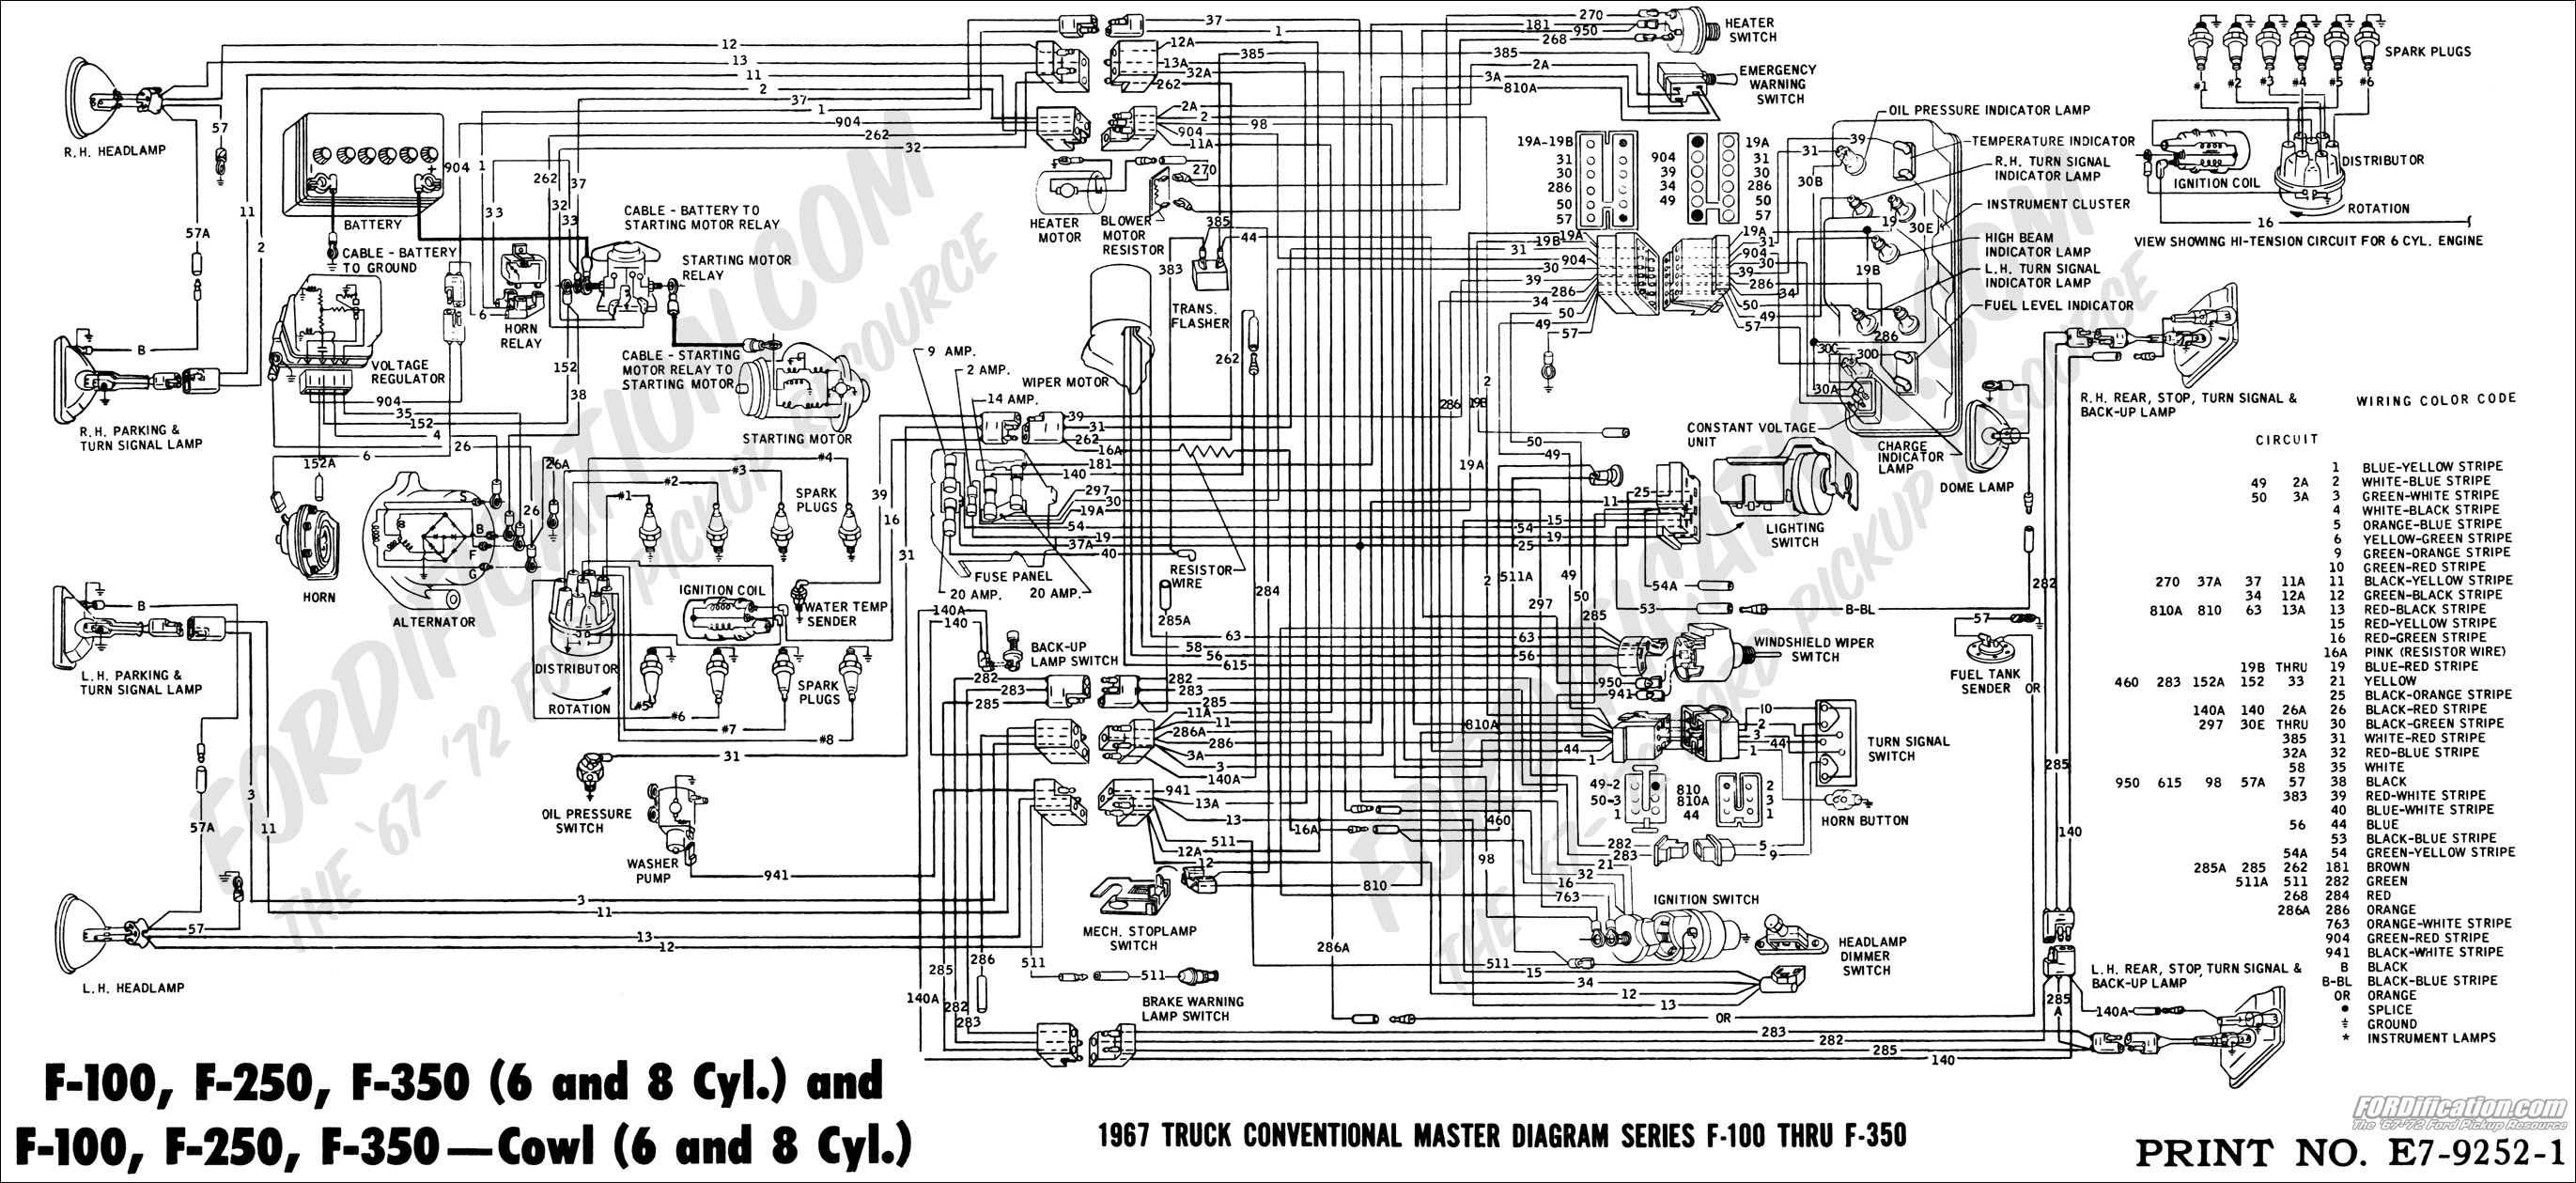 88 f150 wiring diagram wiring library 2003 Ford Wiring Schematic 89 ford f150 wiring diagram detailed schematics diagram rh keyplusrubber com 1988 f150 wiring diagram 1988